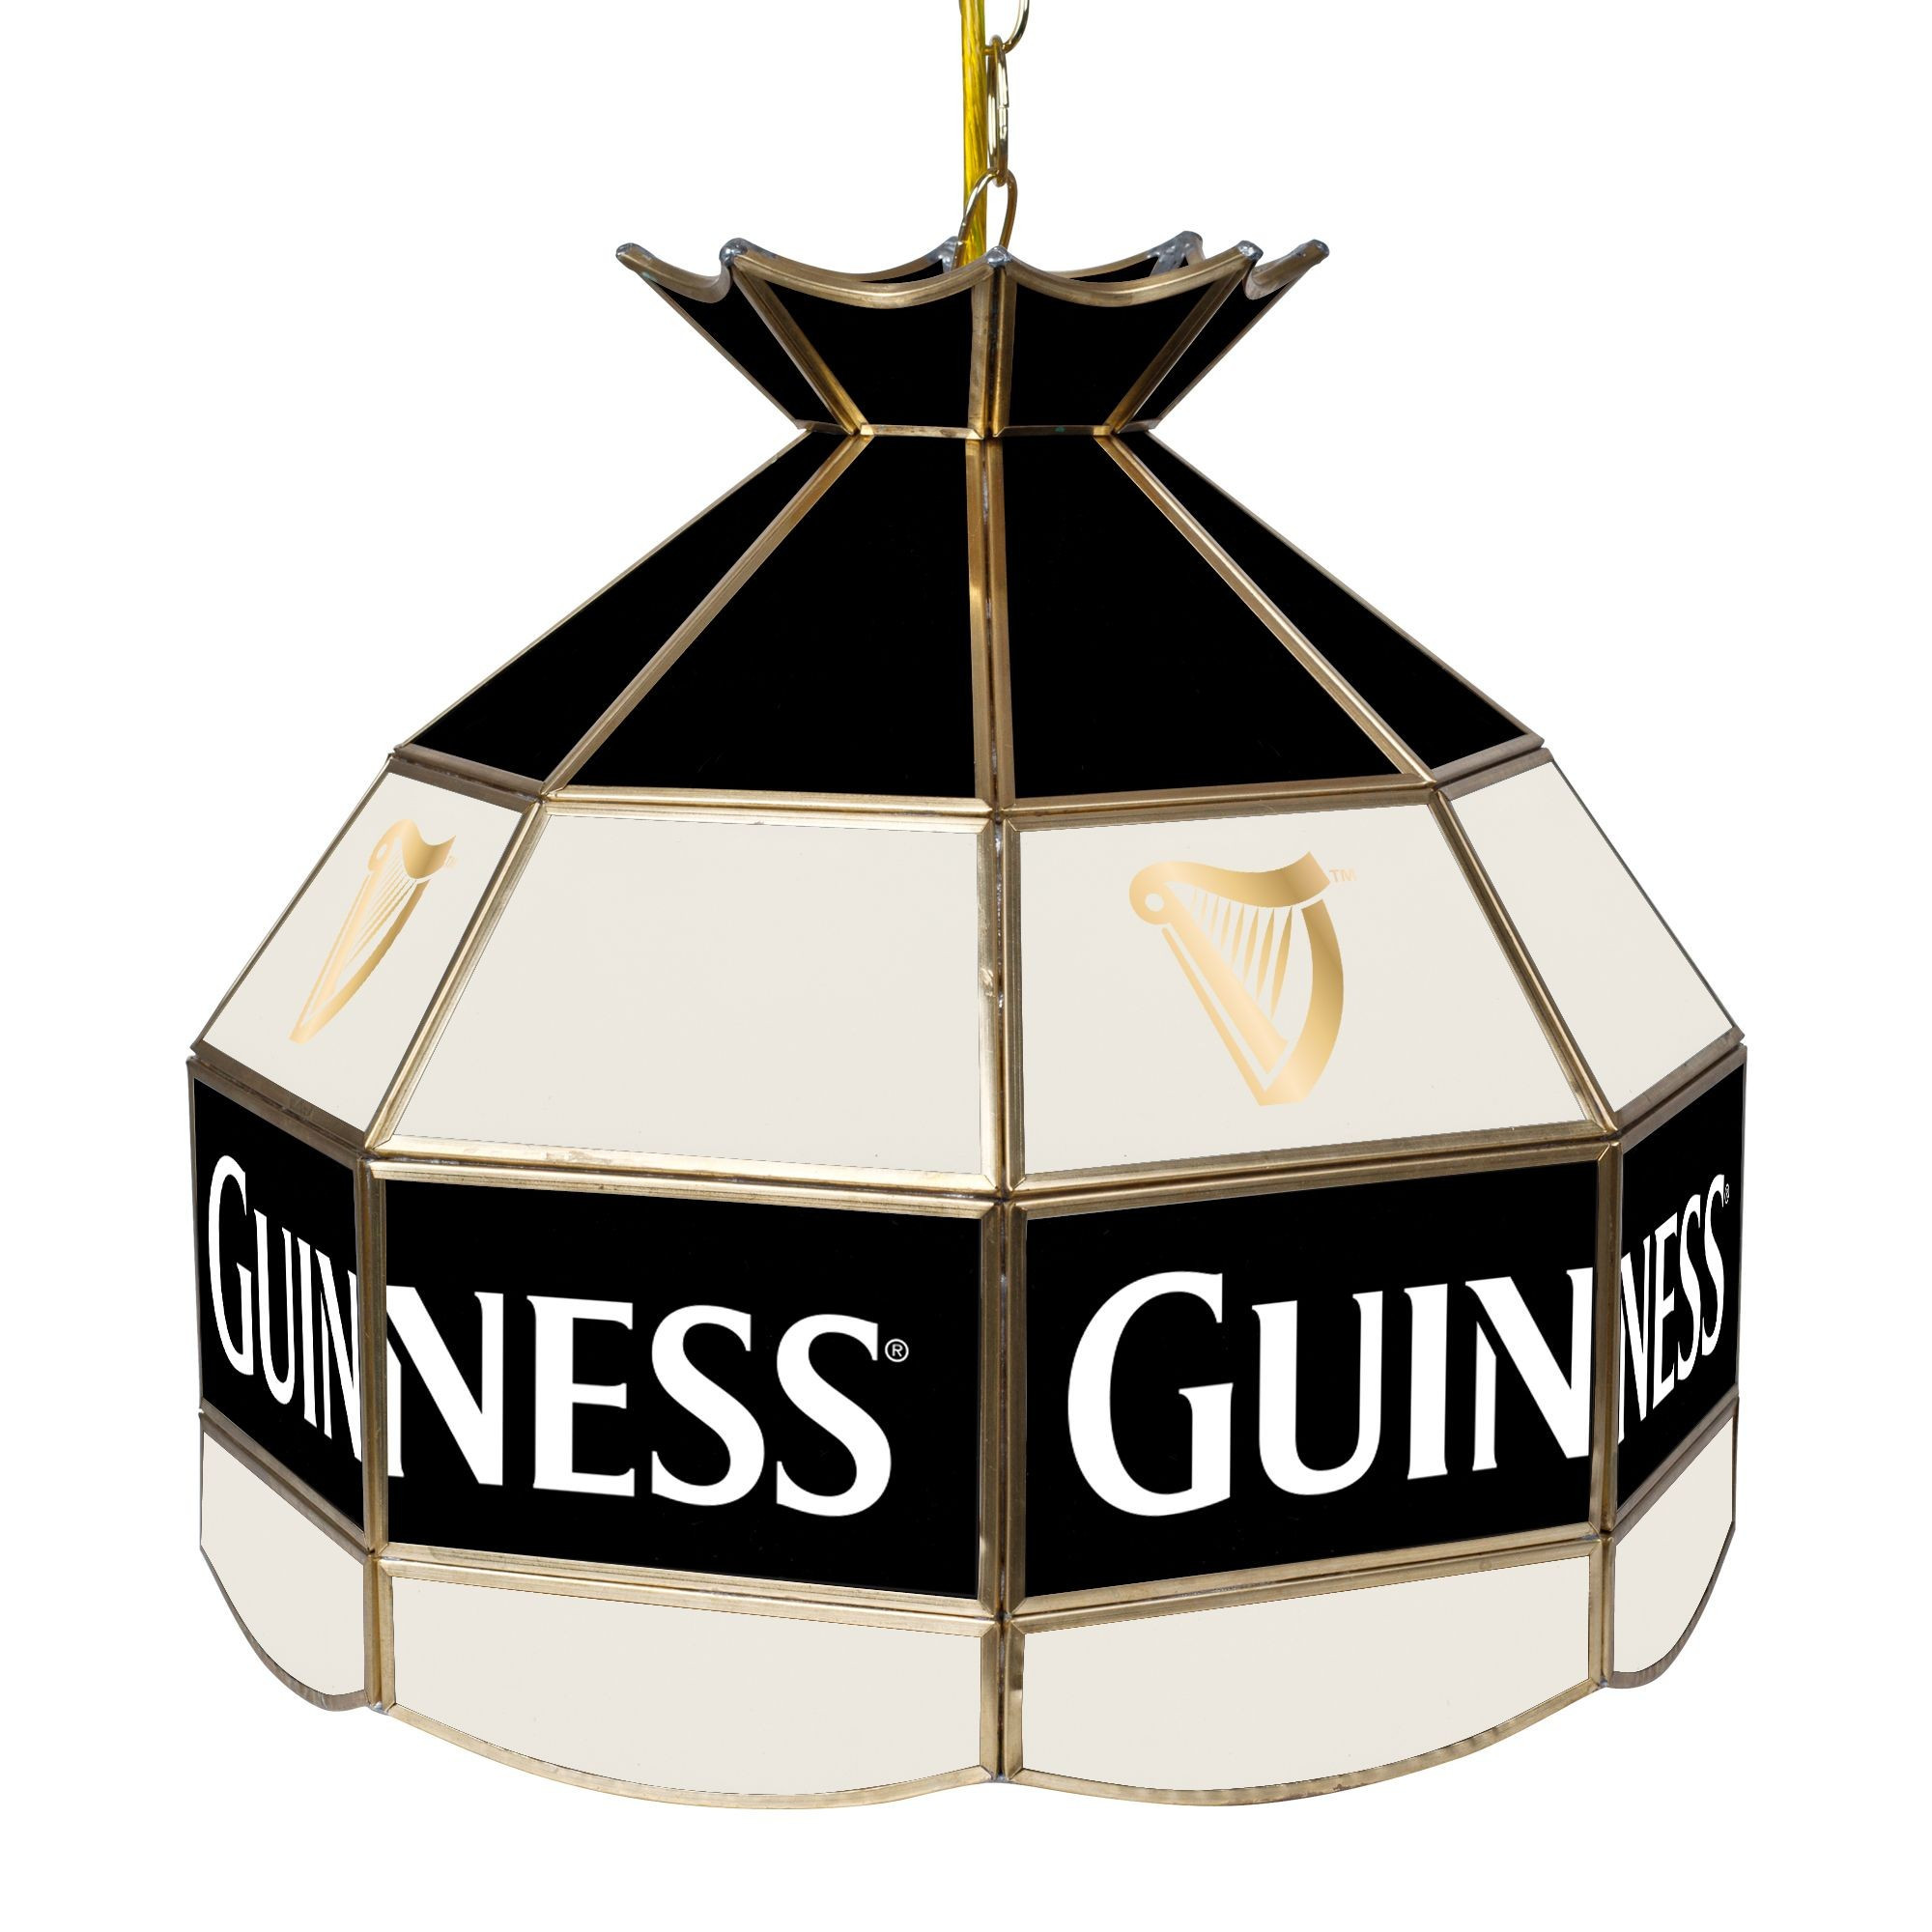 tiffany art glass vase of guinness handmade stained glass tiffany style lamp intended for gn1600